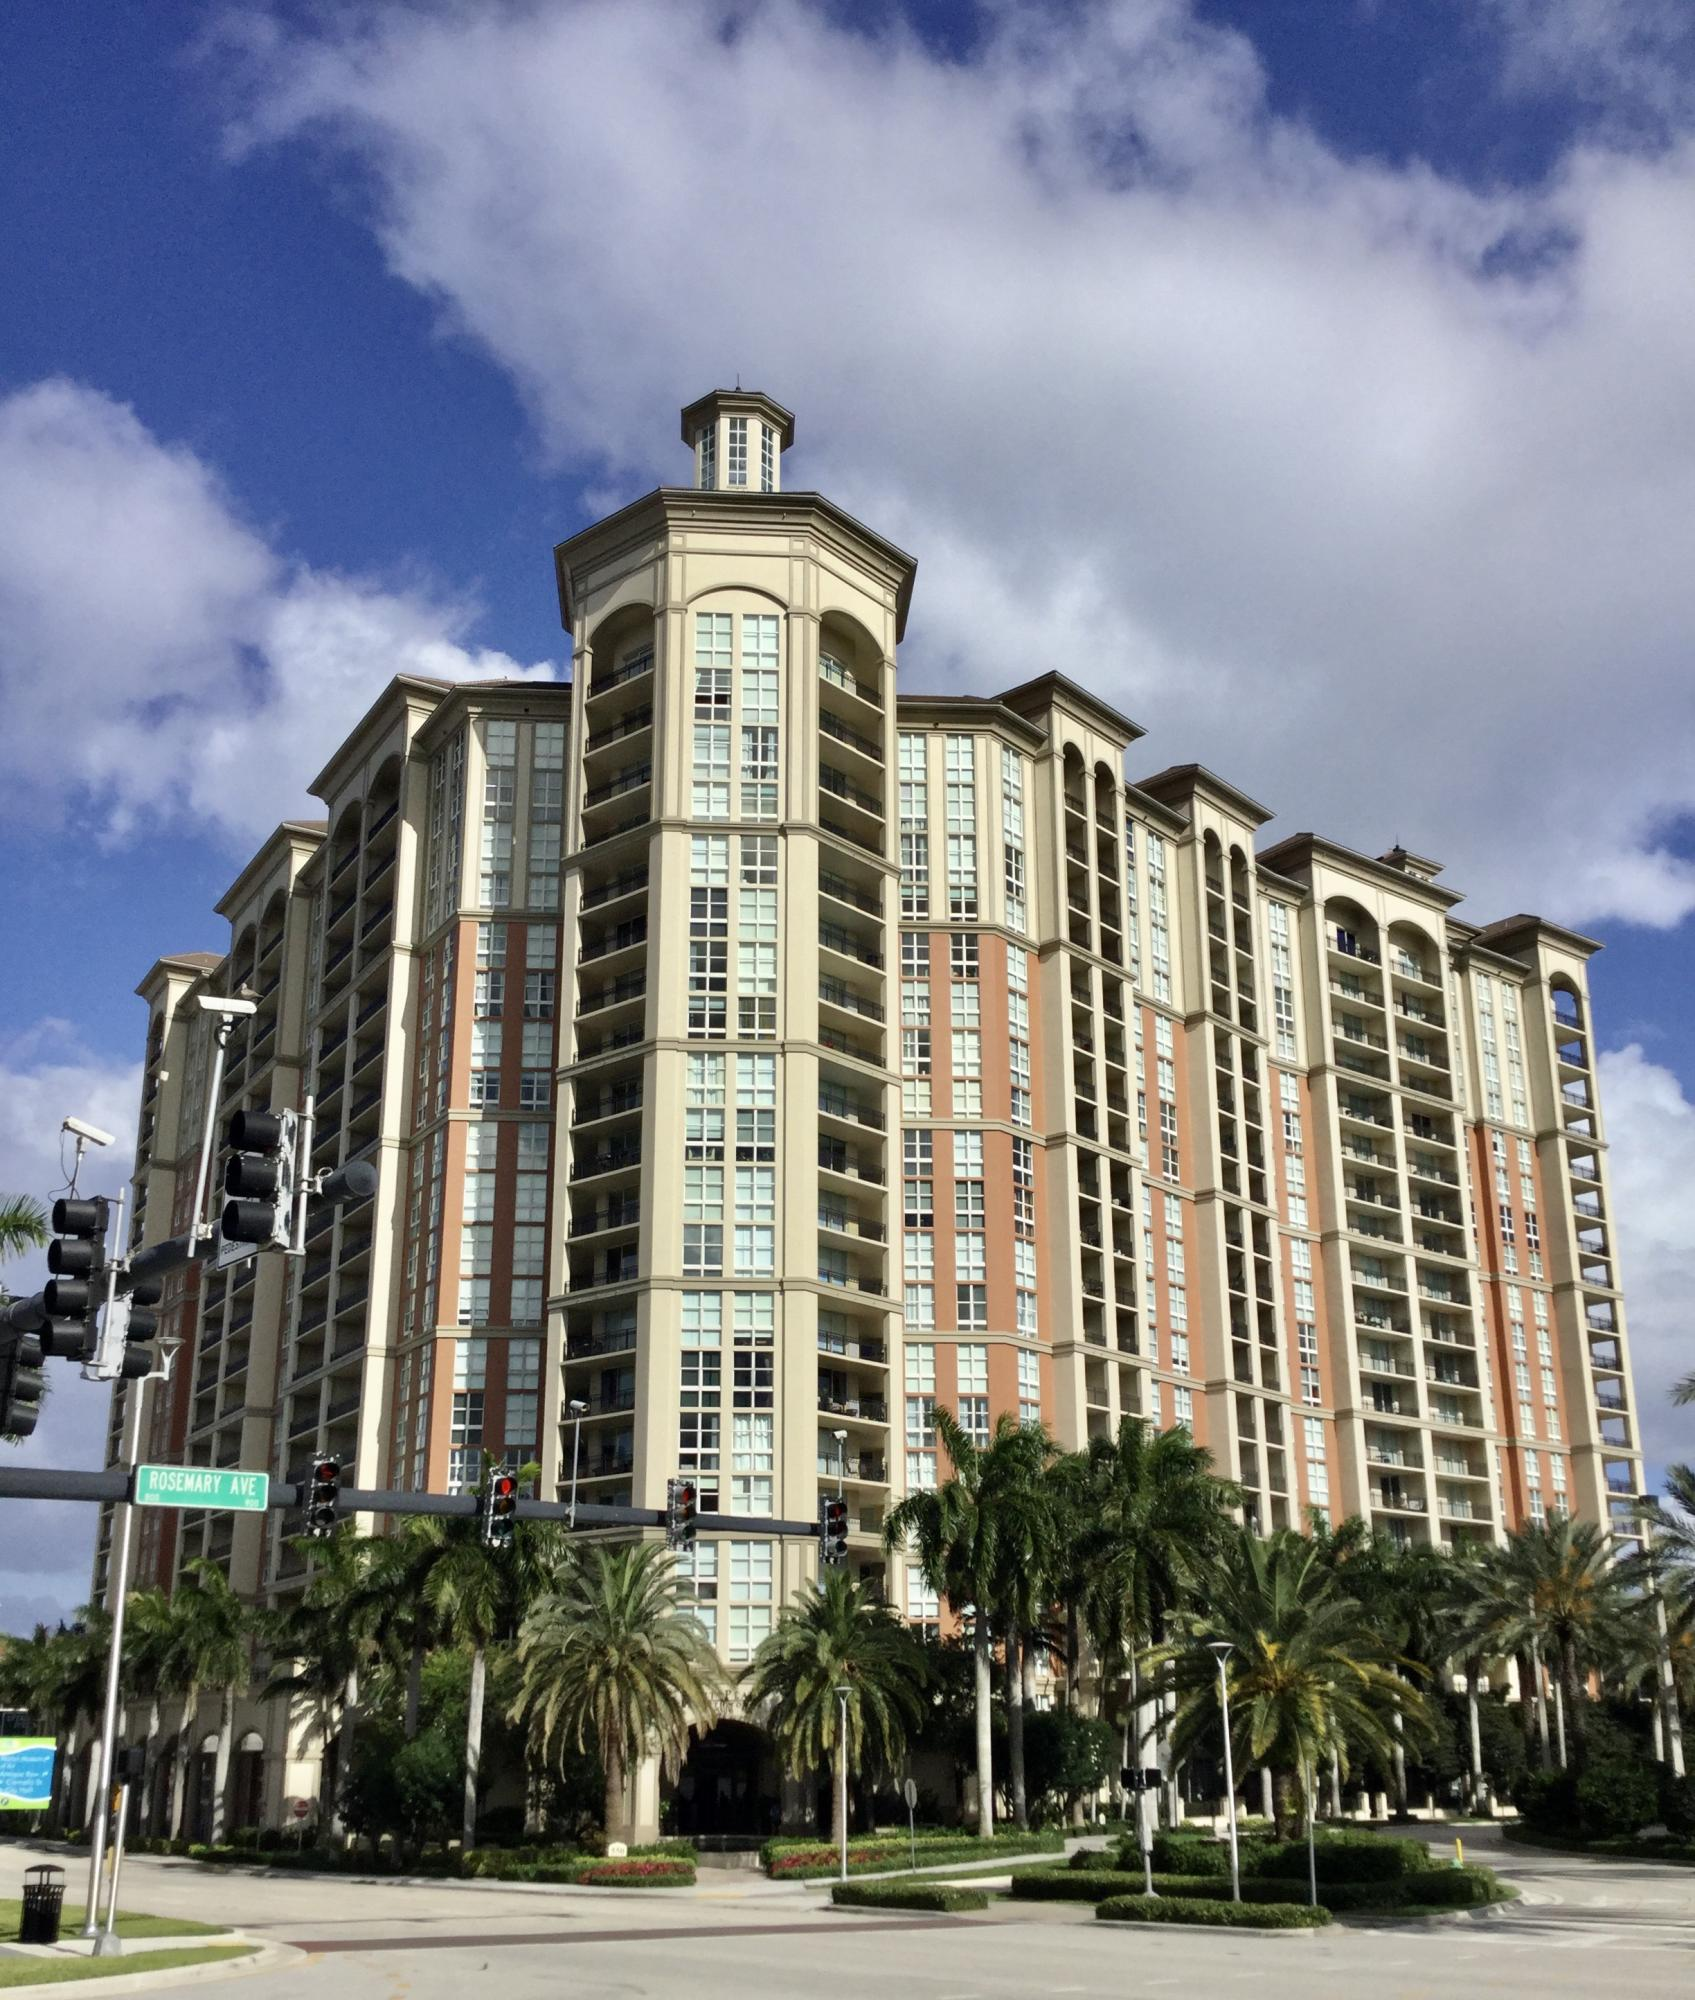 550 Okeechobee Boulevard, West Palm Beach, Florida 33401, 2 Bedrooms Bedrooms, ,2 BathroomsBathrooms,Condo/Coop,For Sale,CITYPLACE SOUTH TOWER CONDO,Okeechobee,14,RX-10621395